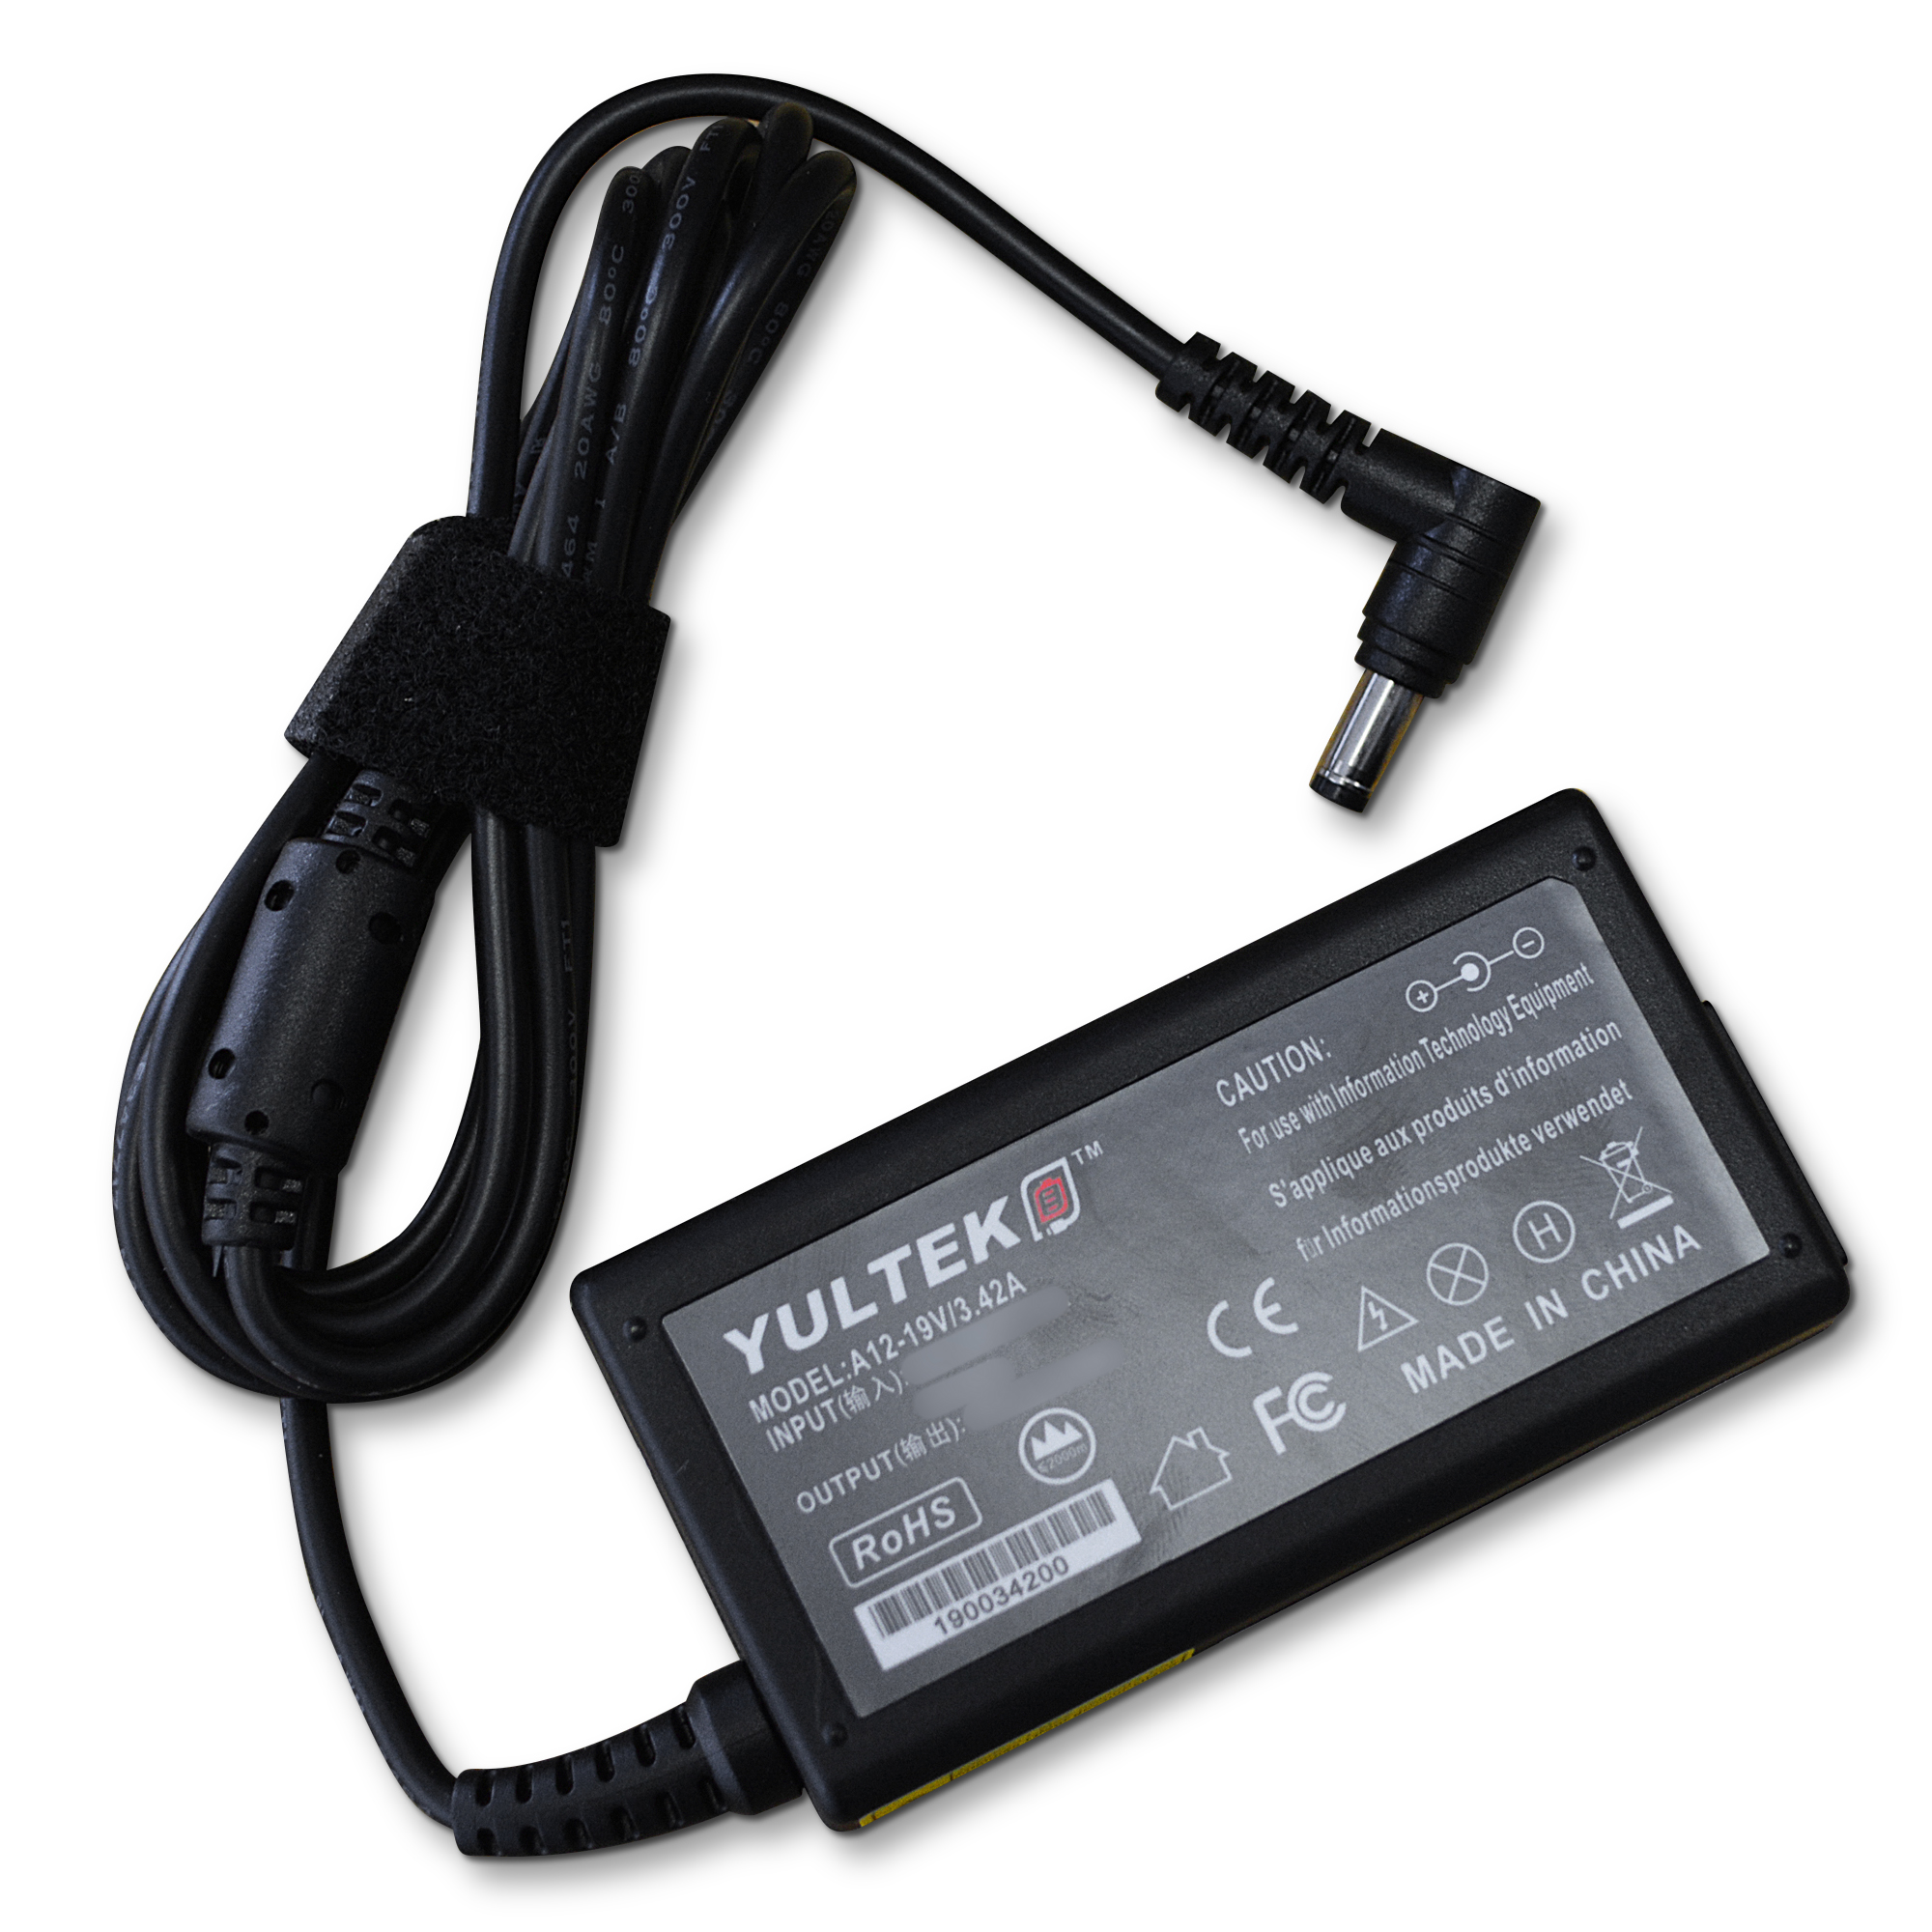 Toshiba Satellite L50DT-A-11U Laptop Charger